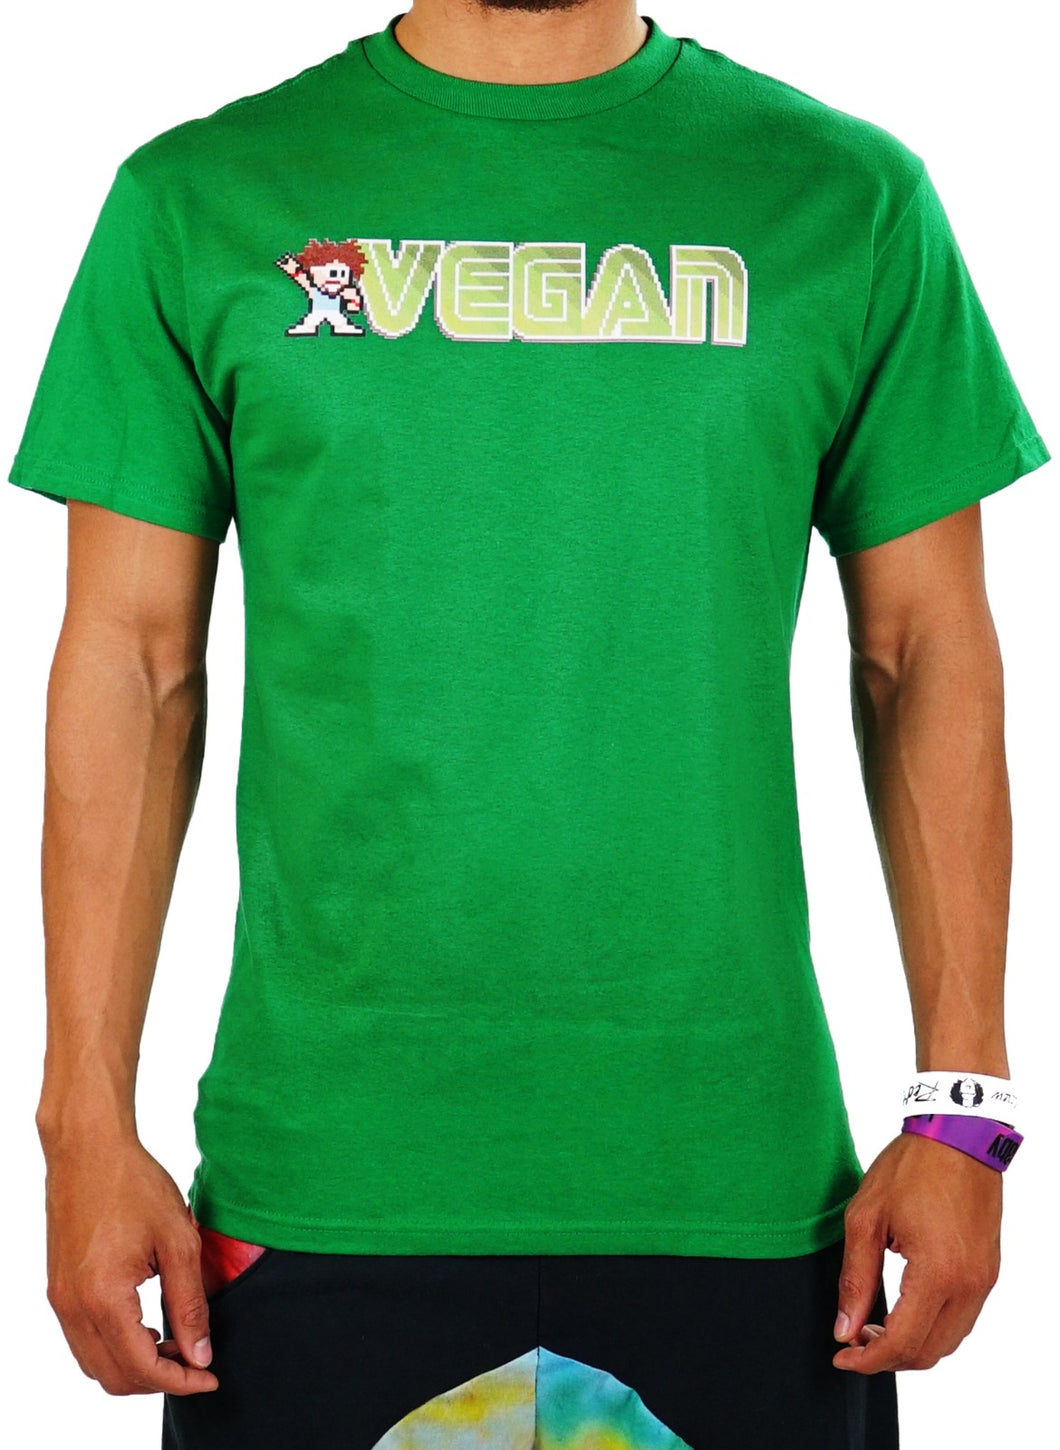 Vegan Man Tee - Party Rock Clothing REDFOO LMFAO